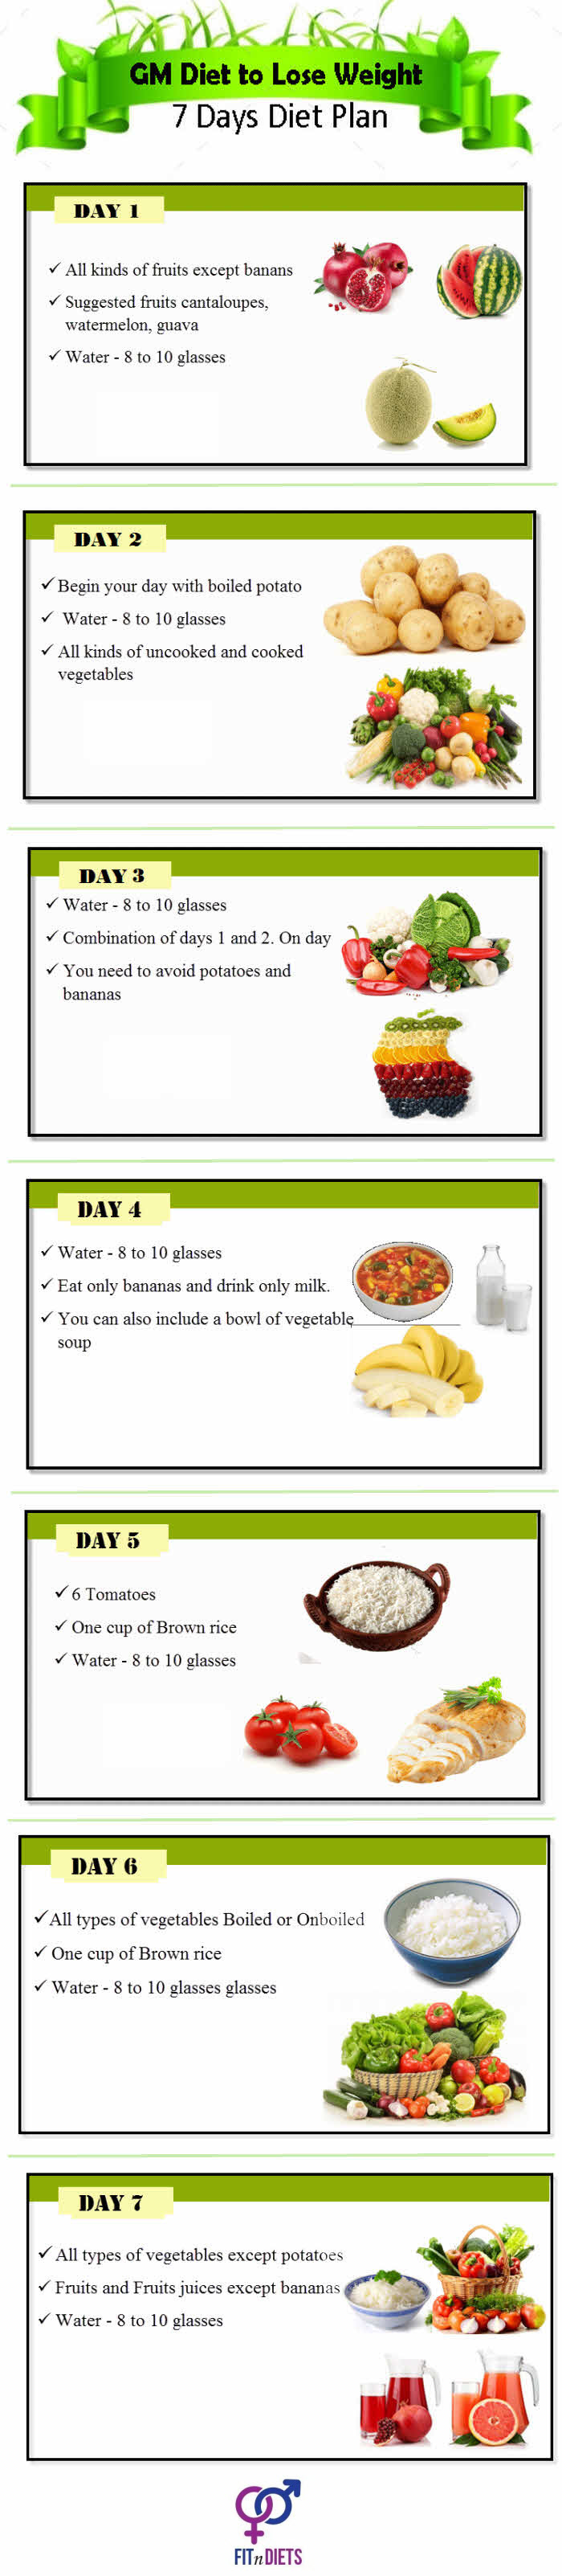 how to burn lower abdominal fat